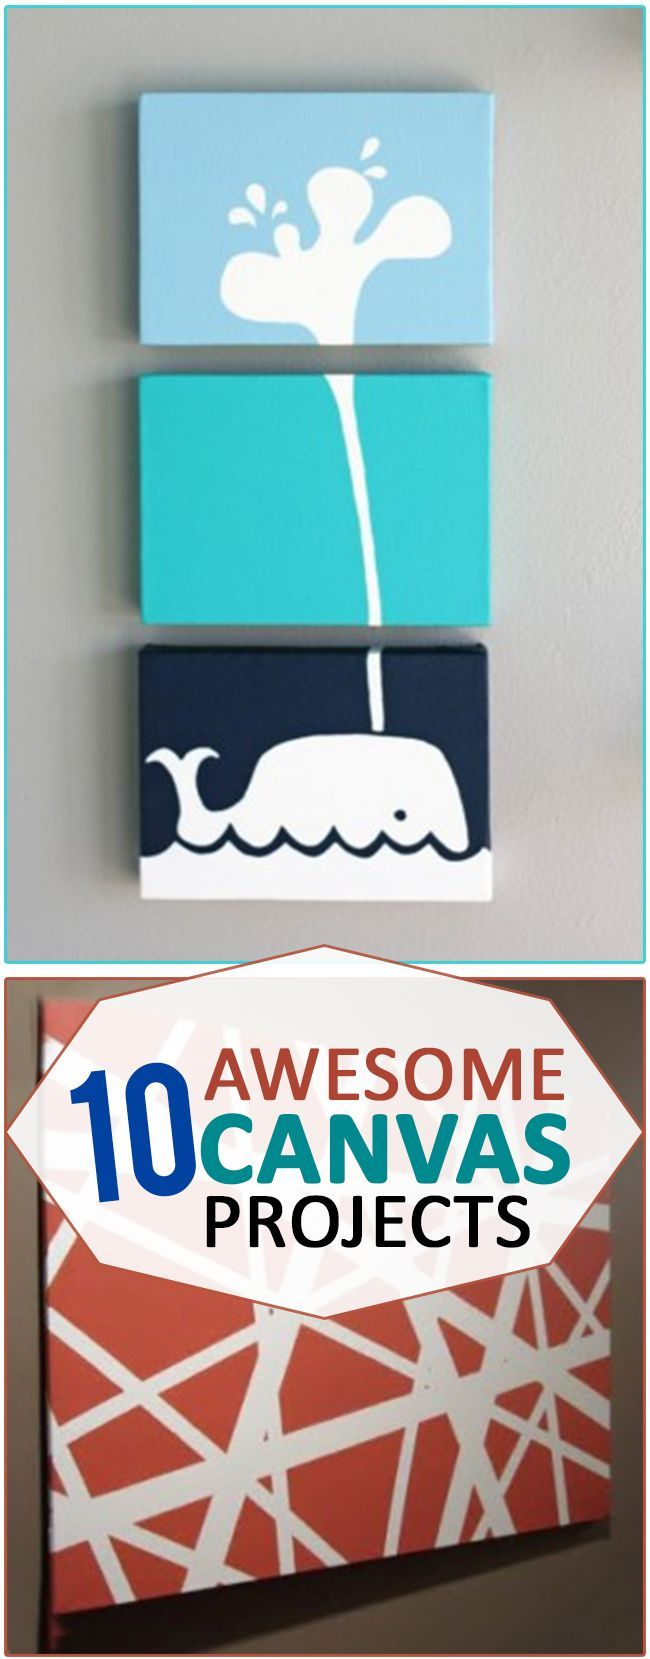 10 Awesome Canvas Projects That Will Amaze